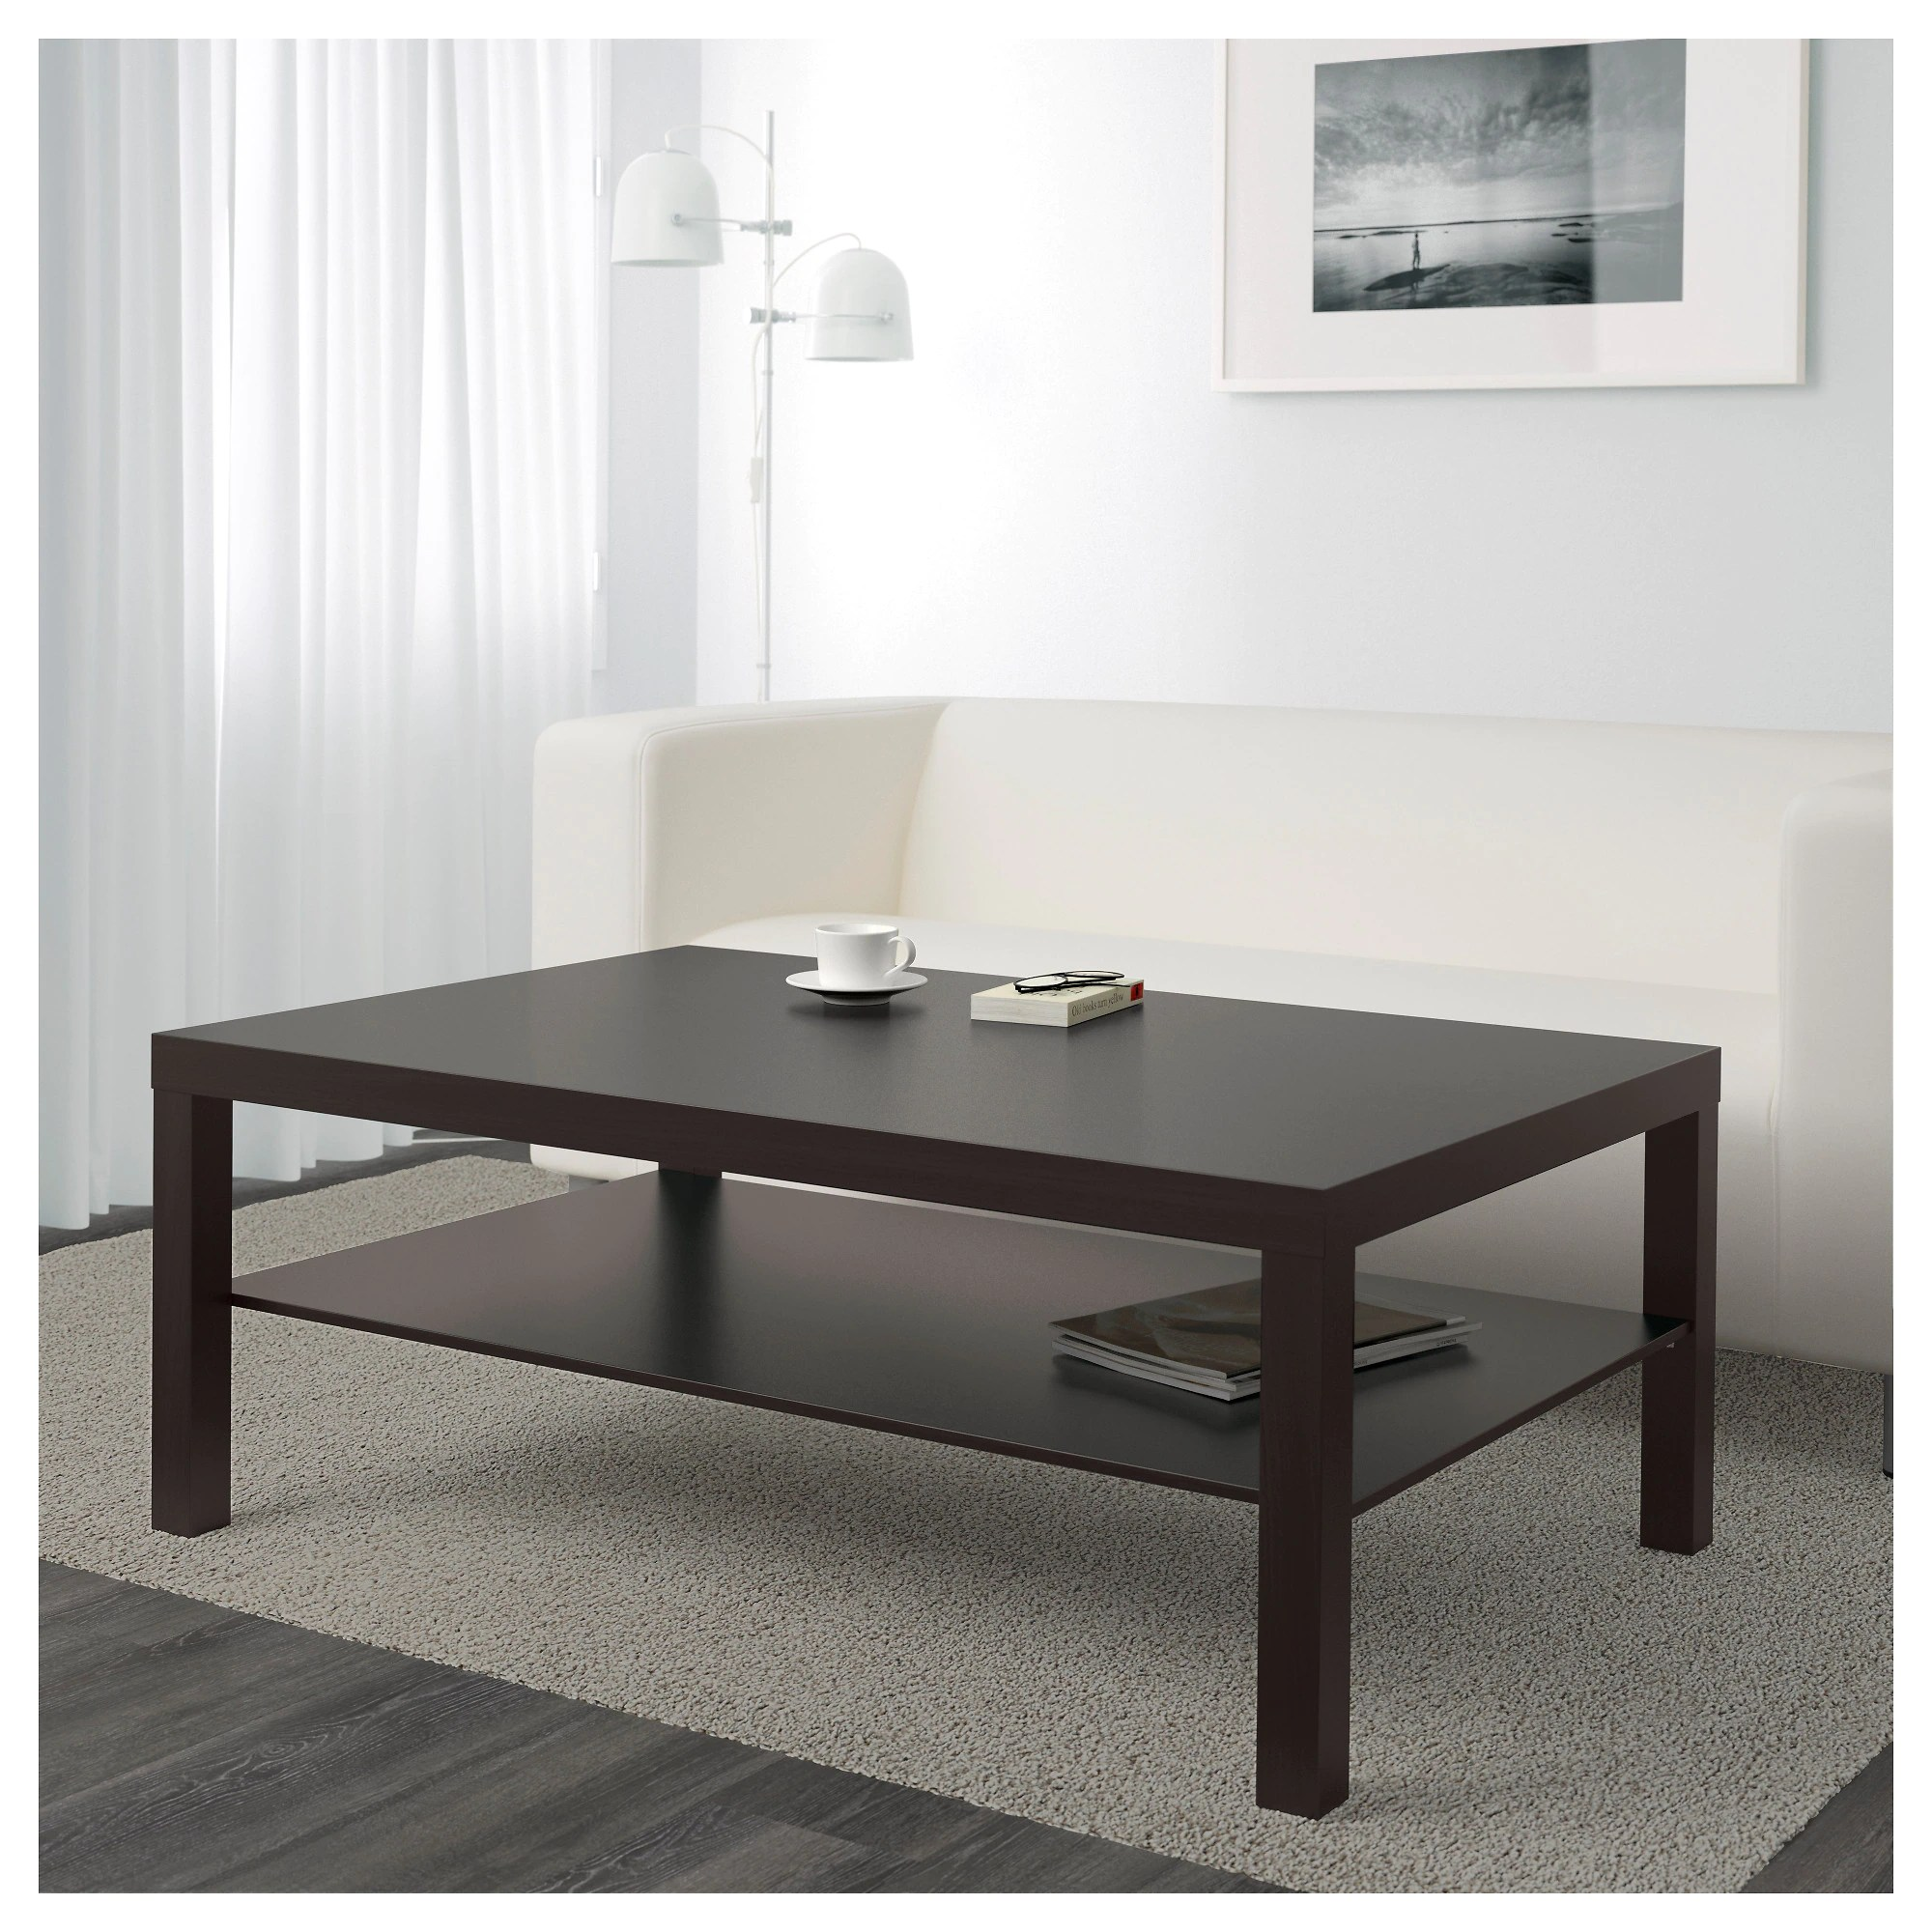 Lack Couchtisch Ikea Coffee Table Lack Black Brown